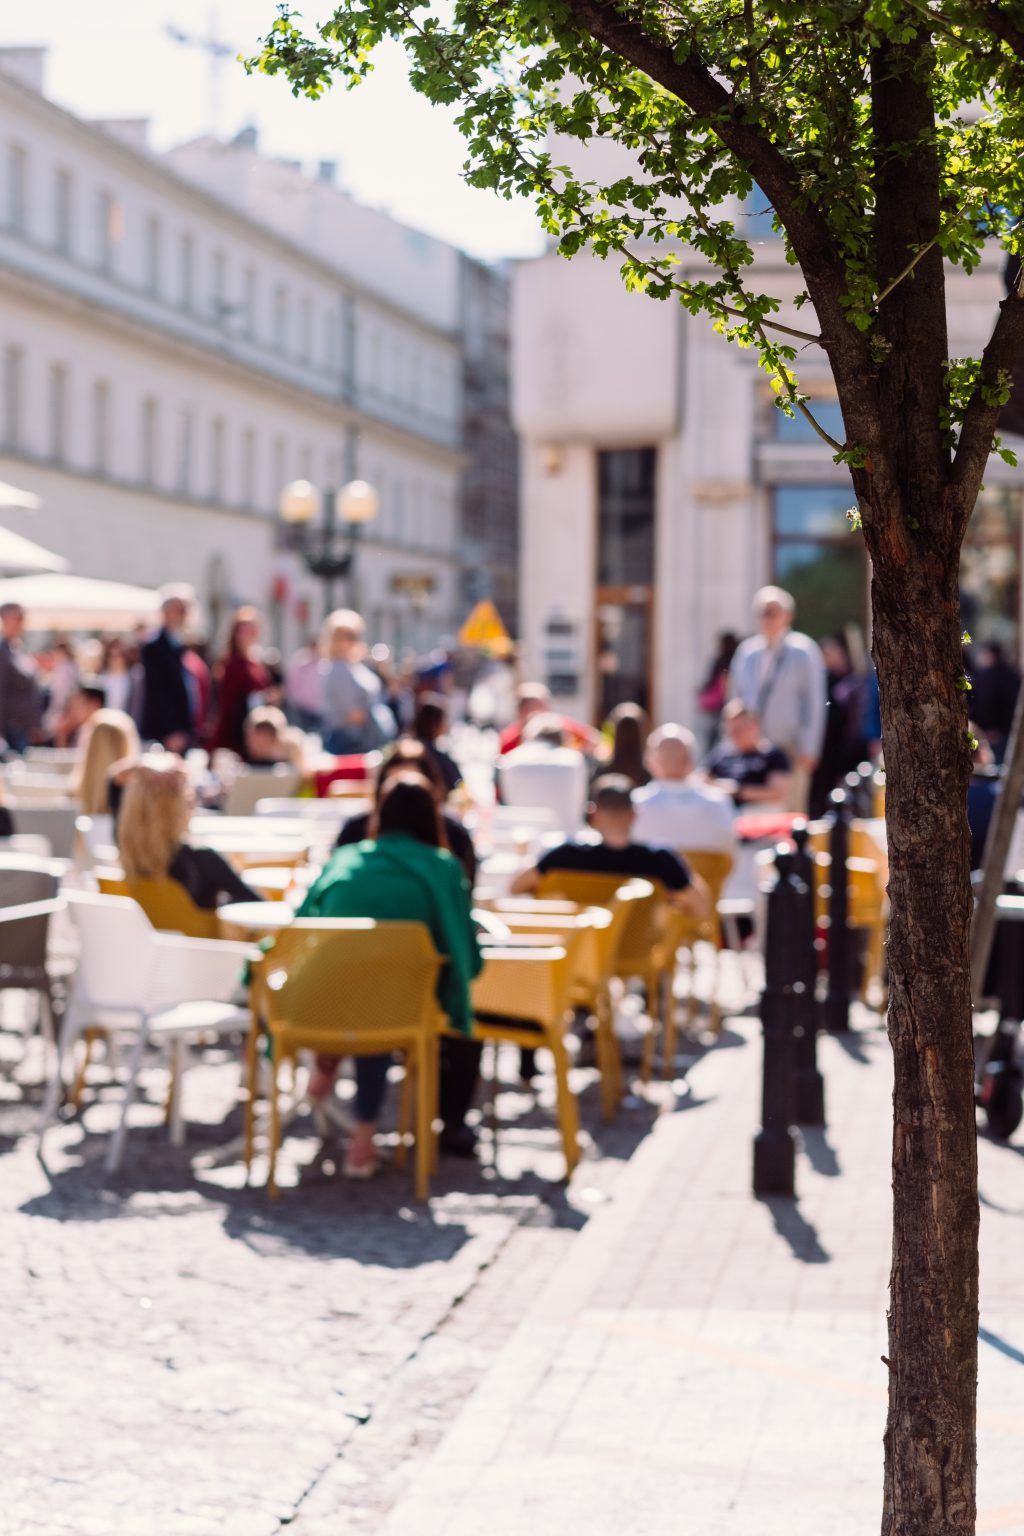 People dining at a restaurant outdoor seating - free stock photo